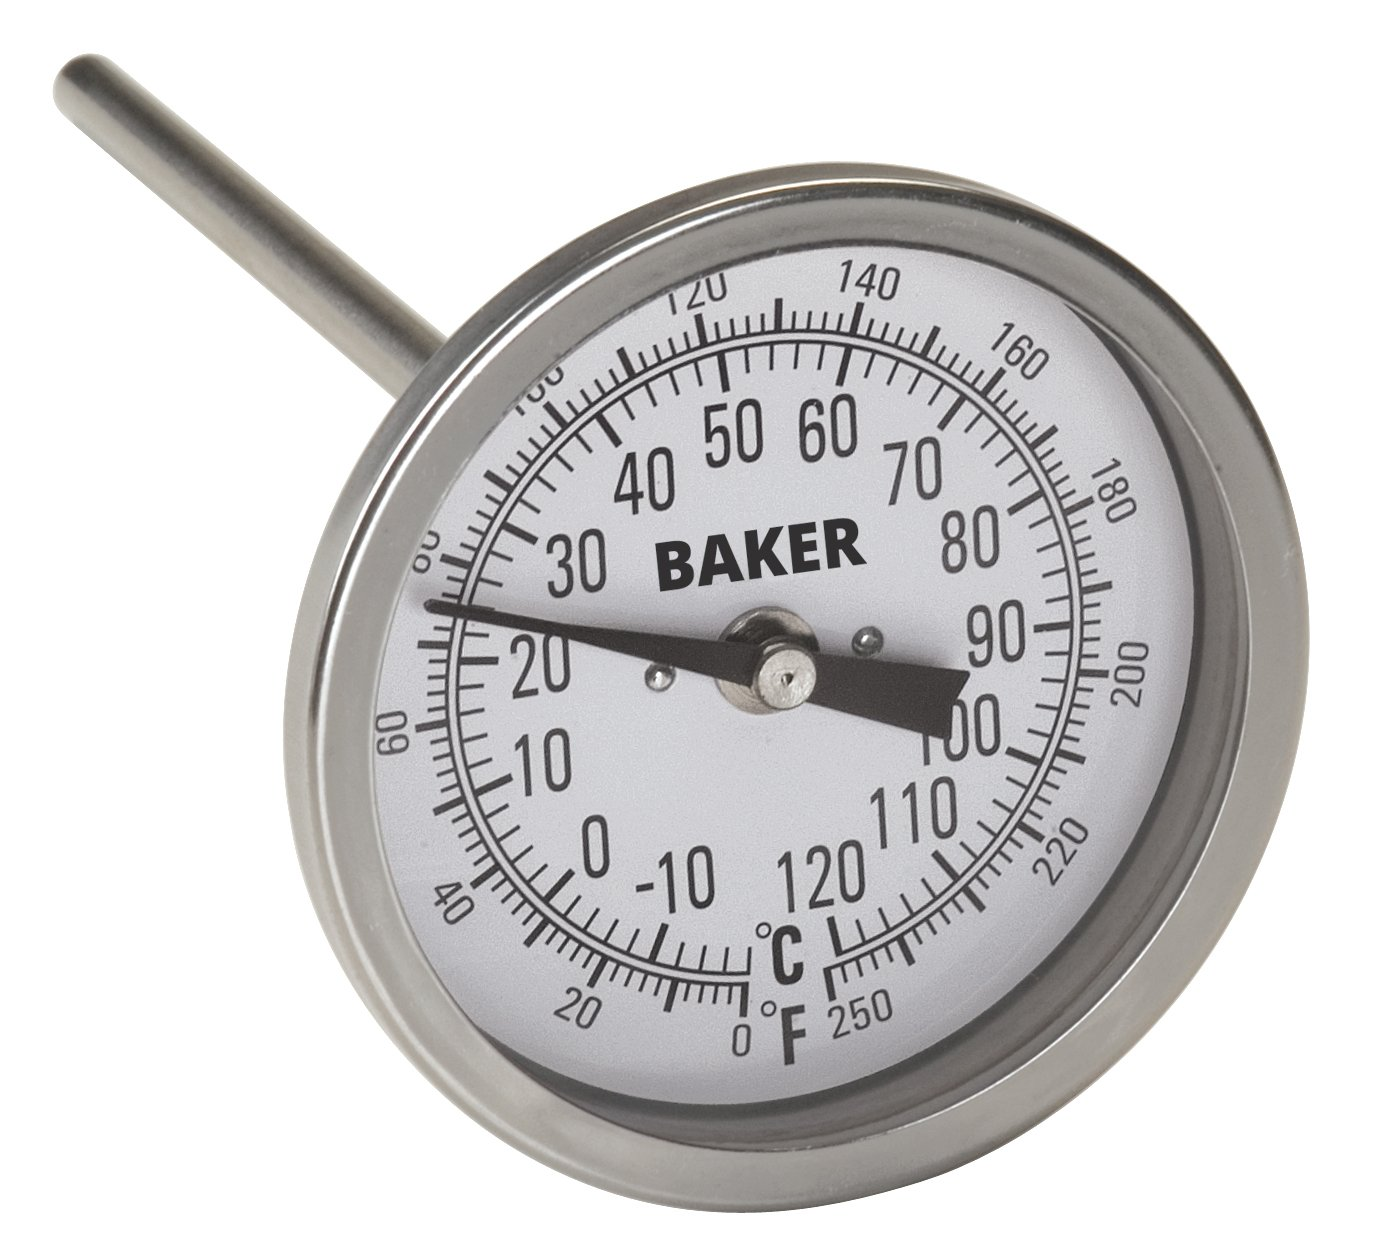 Baker Instruments T300 Series Stainless Steel Bi Metal Thermometer 0 to 250°F (-20 to 120°C), 6